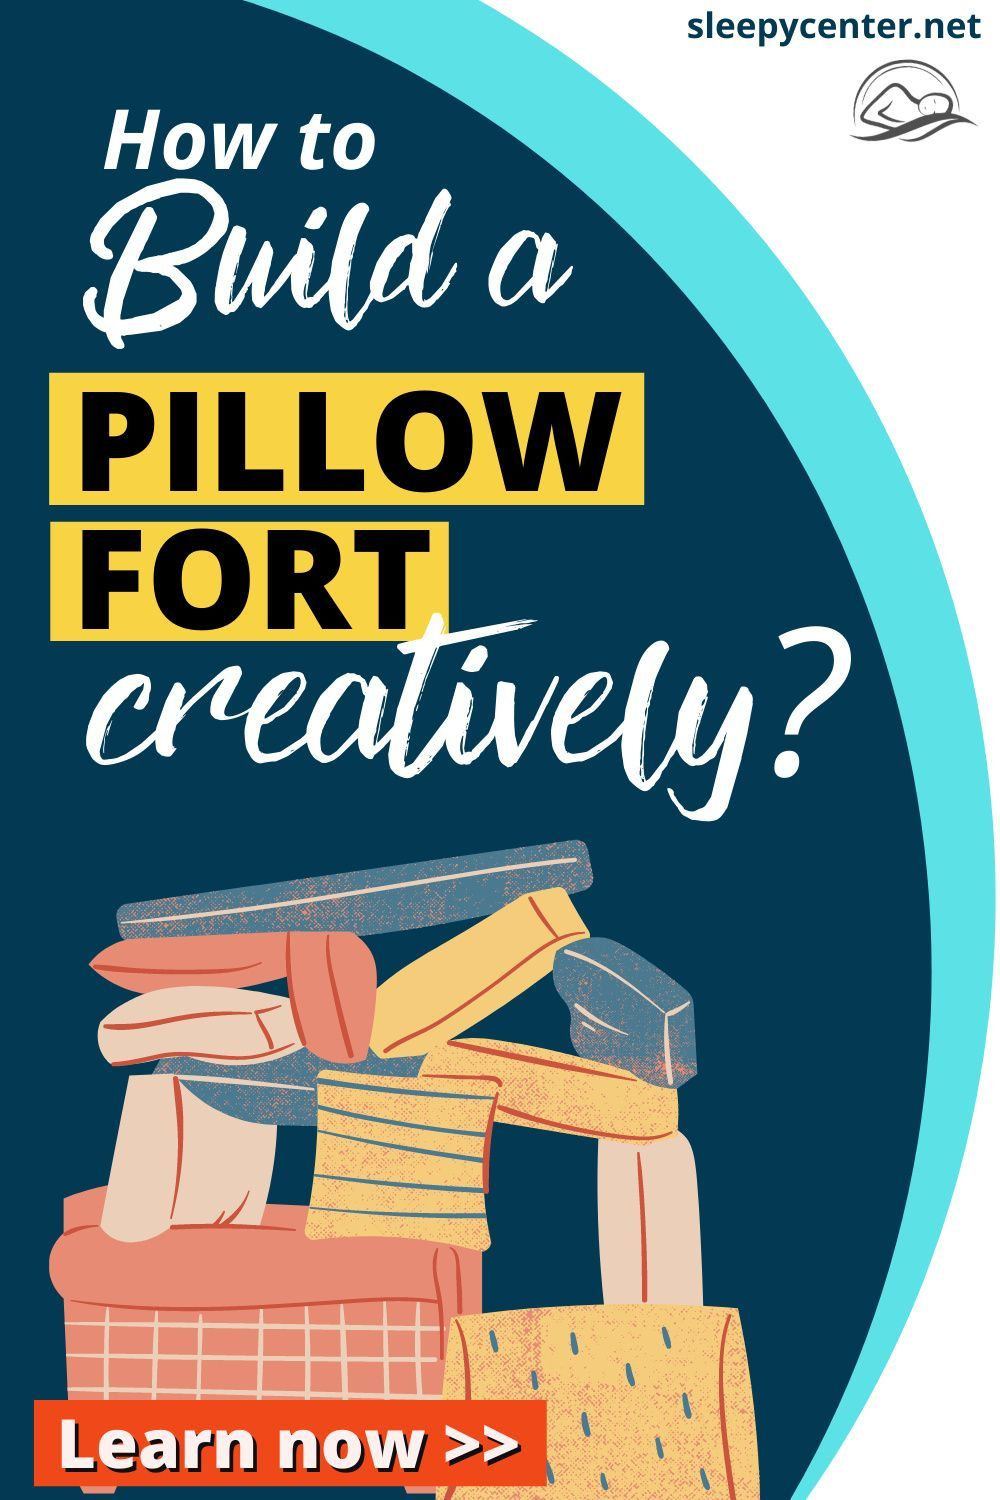 How To Build A Pillow Fort Creatively?   Sleepy Center